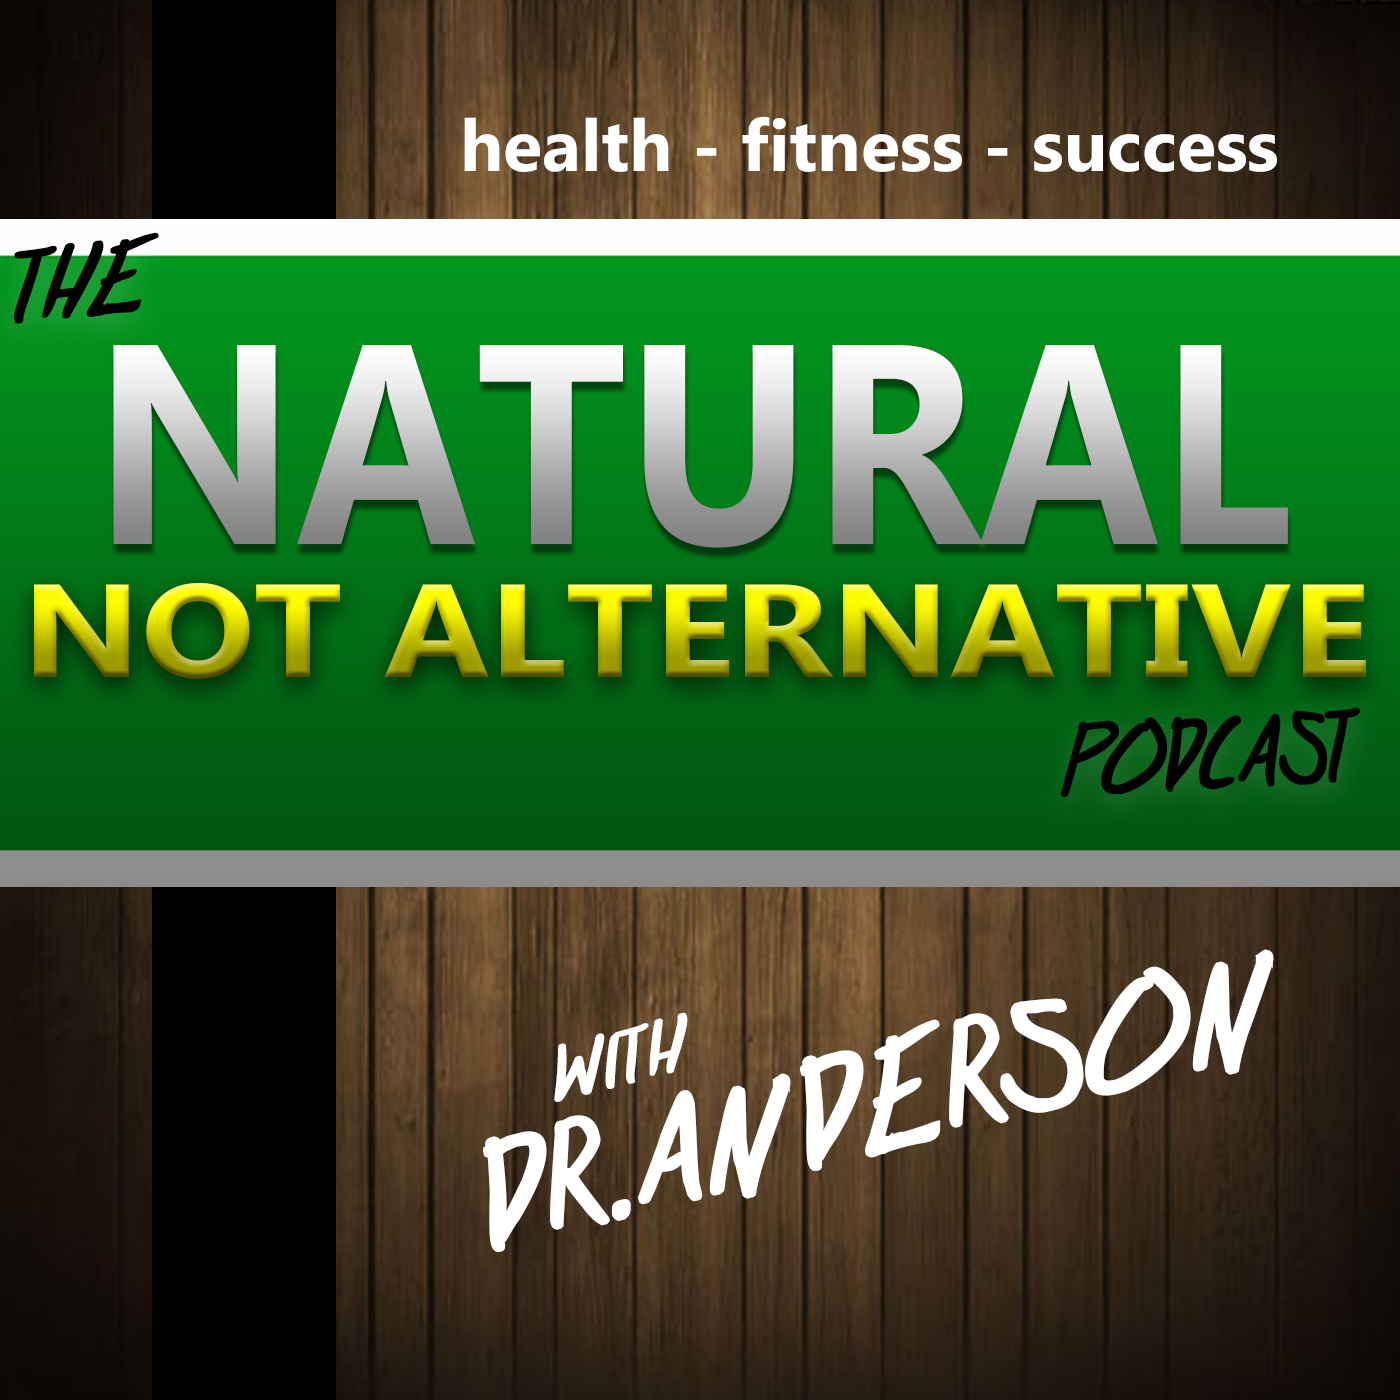 Natural. Not Alternative Podcast